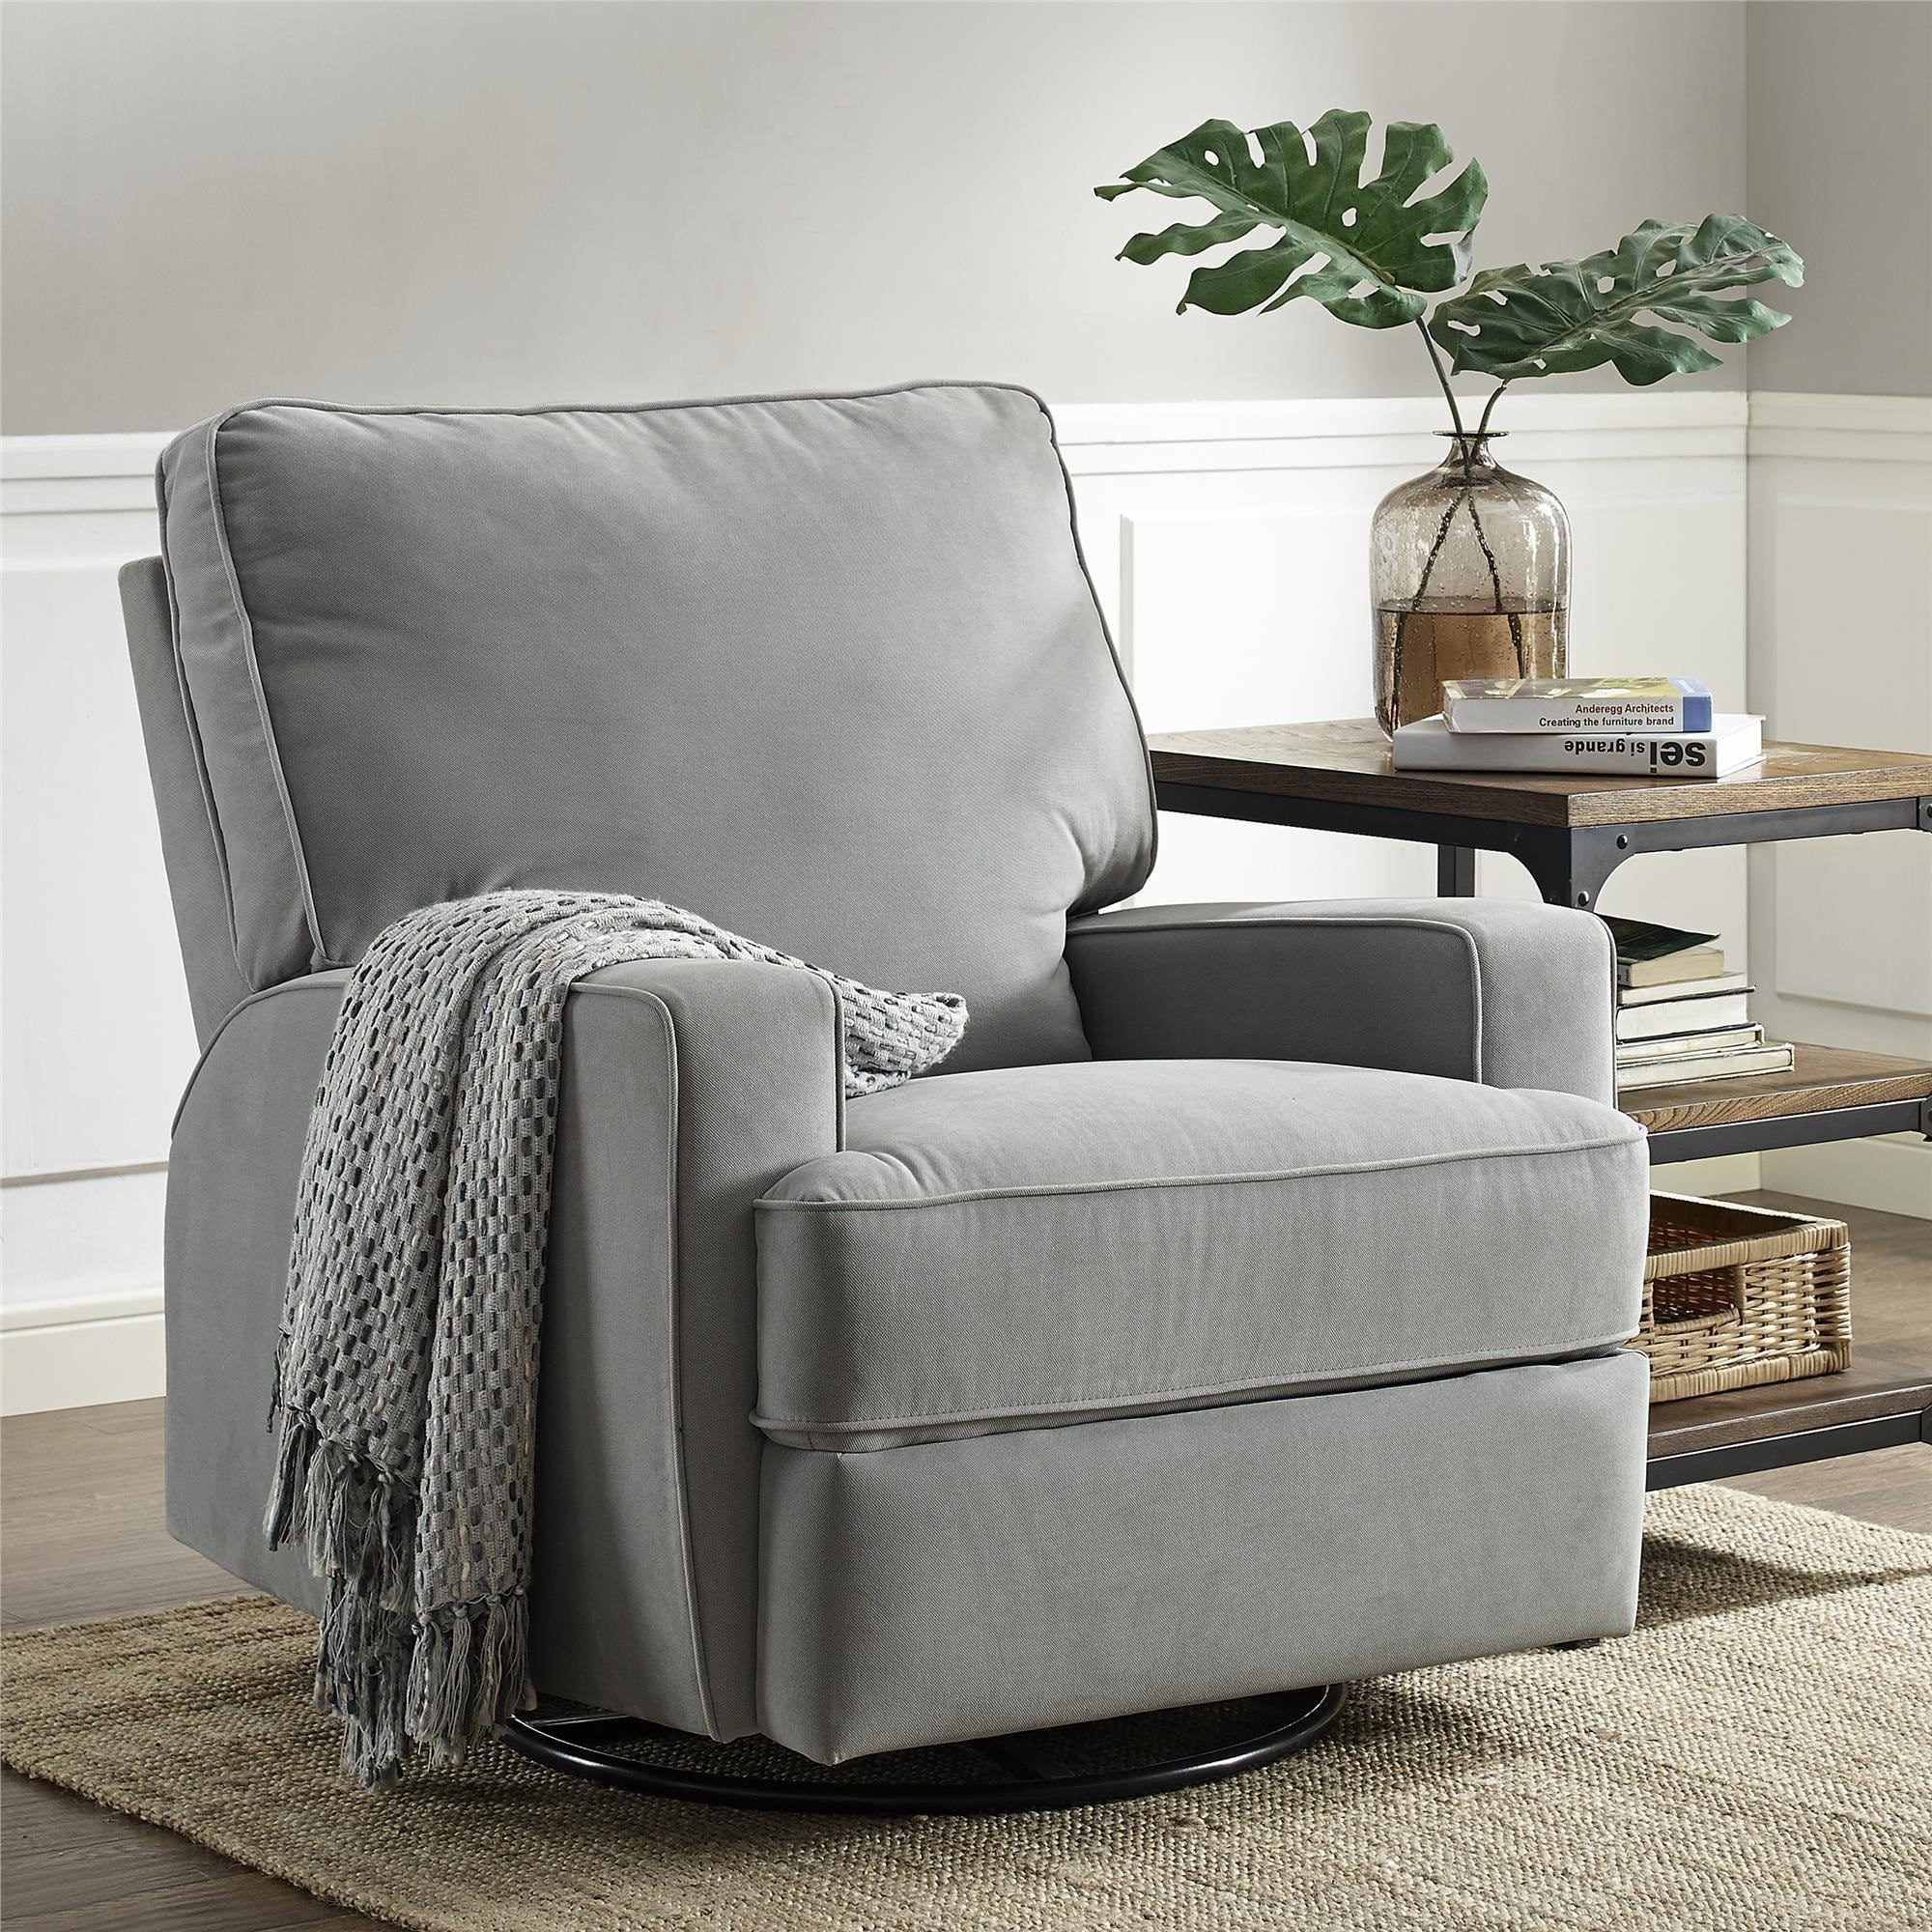 armchair tufted leather for ideas accent under wingback overstuffe ottomans alluring chair cheap home slipper overstock furniture chairs cozy navy ottoman swivel and